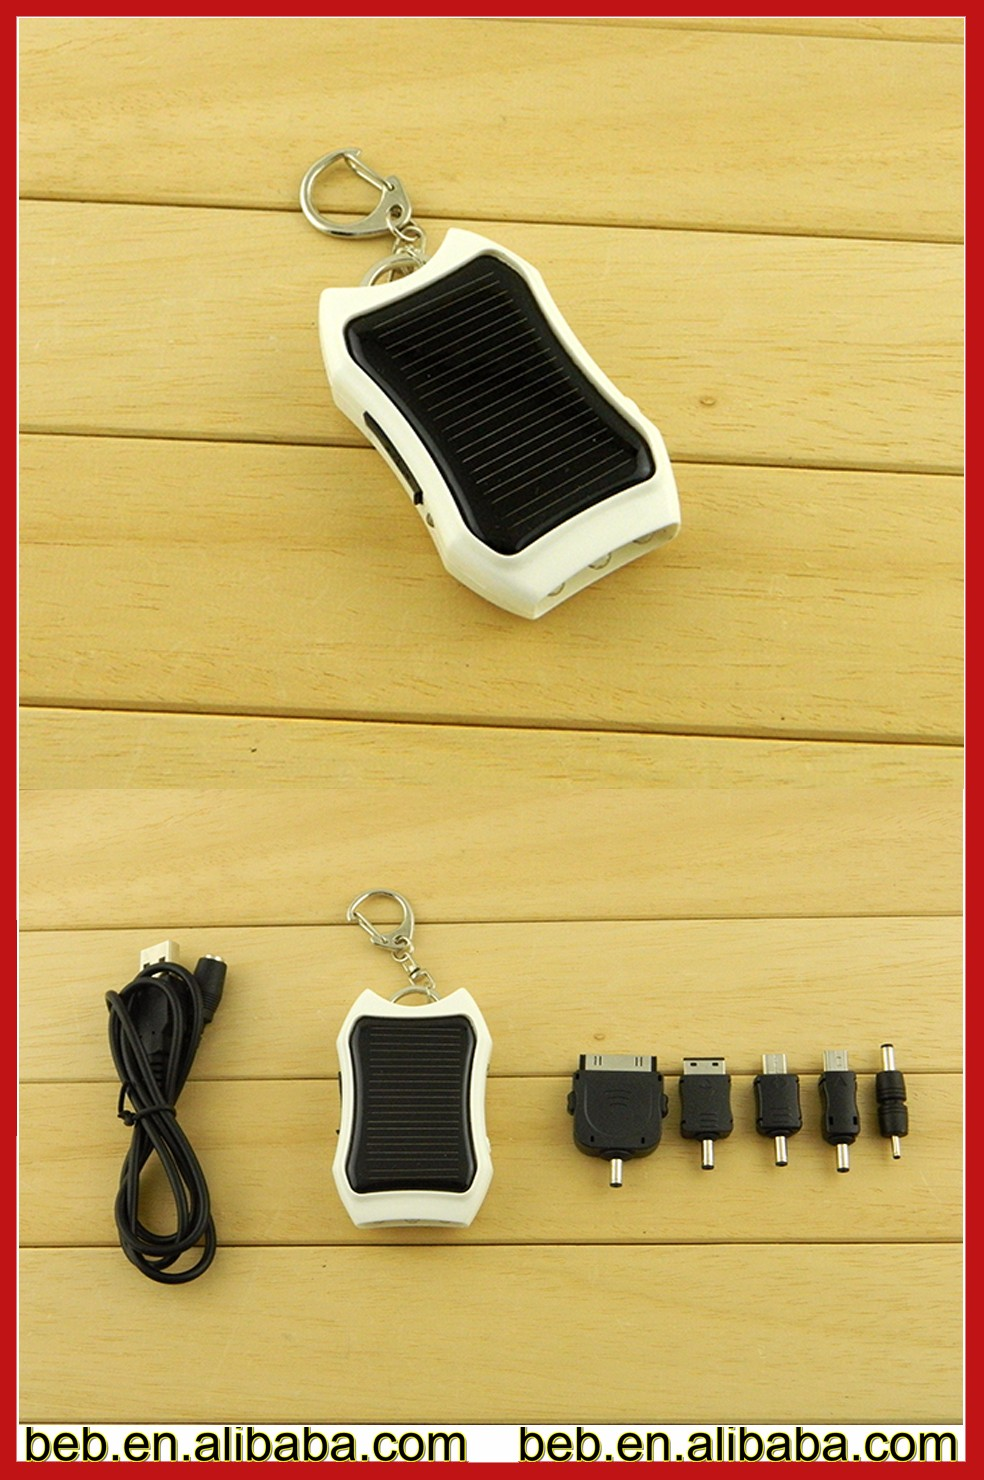 1200mah solar powered phone charger for iphone 5 6 7